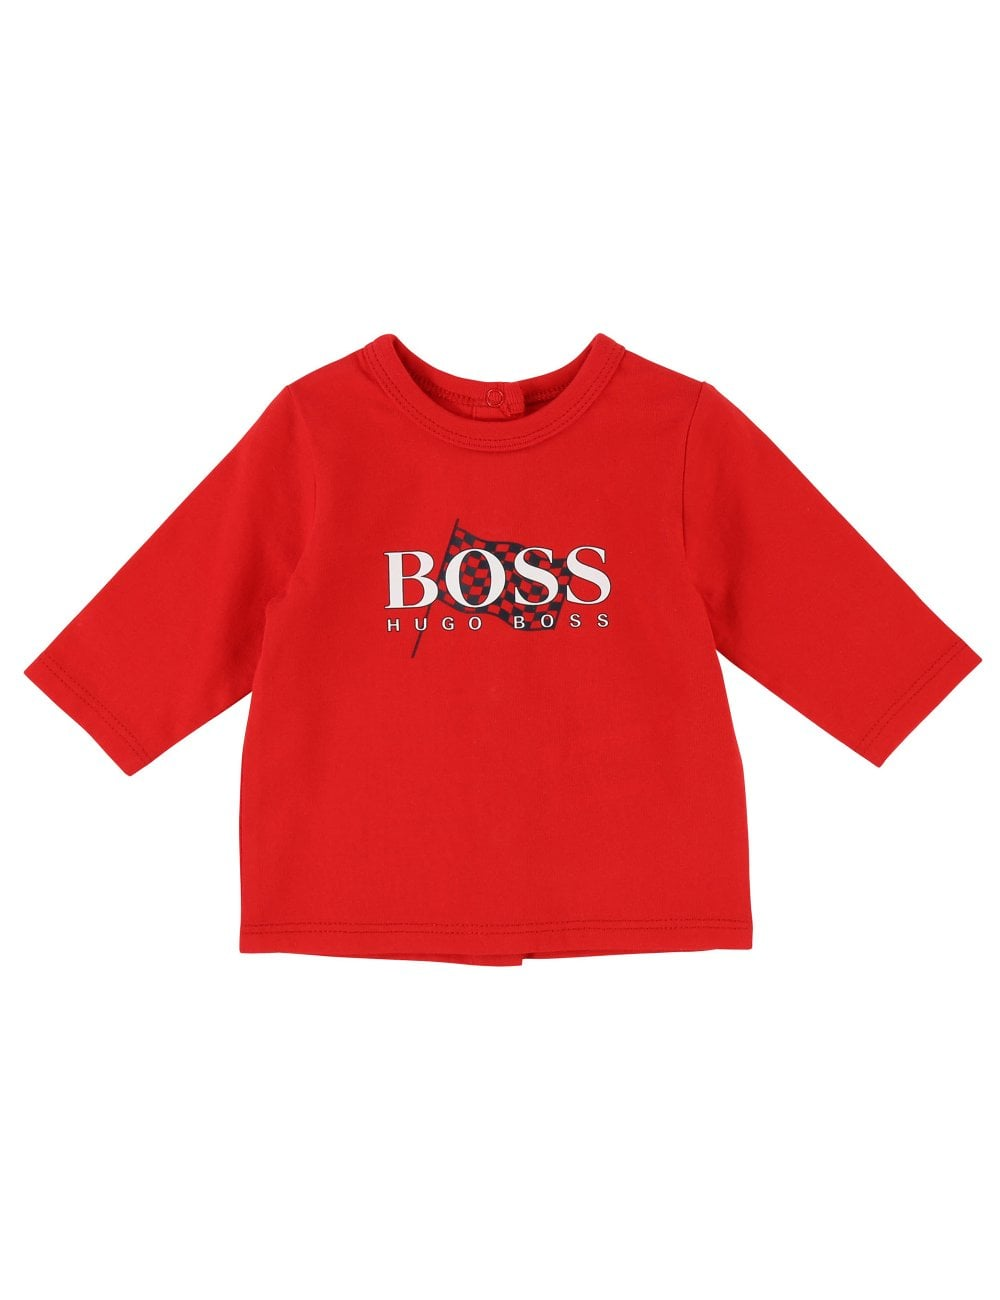 a1d93e2f4181c Baby Boys Long Sleeve Tee. Great Hugo Boss T-Shirt Kids Baby Baby White Boys  Short-Sleeve Clothes Champs. 1494346575-57162700.jpg